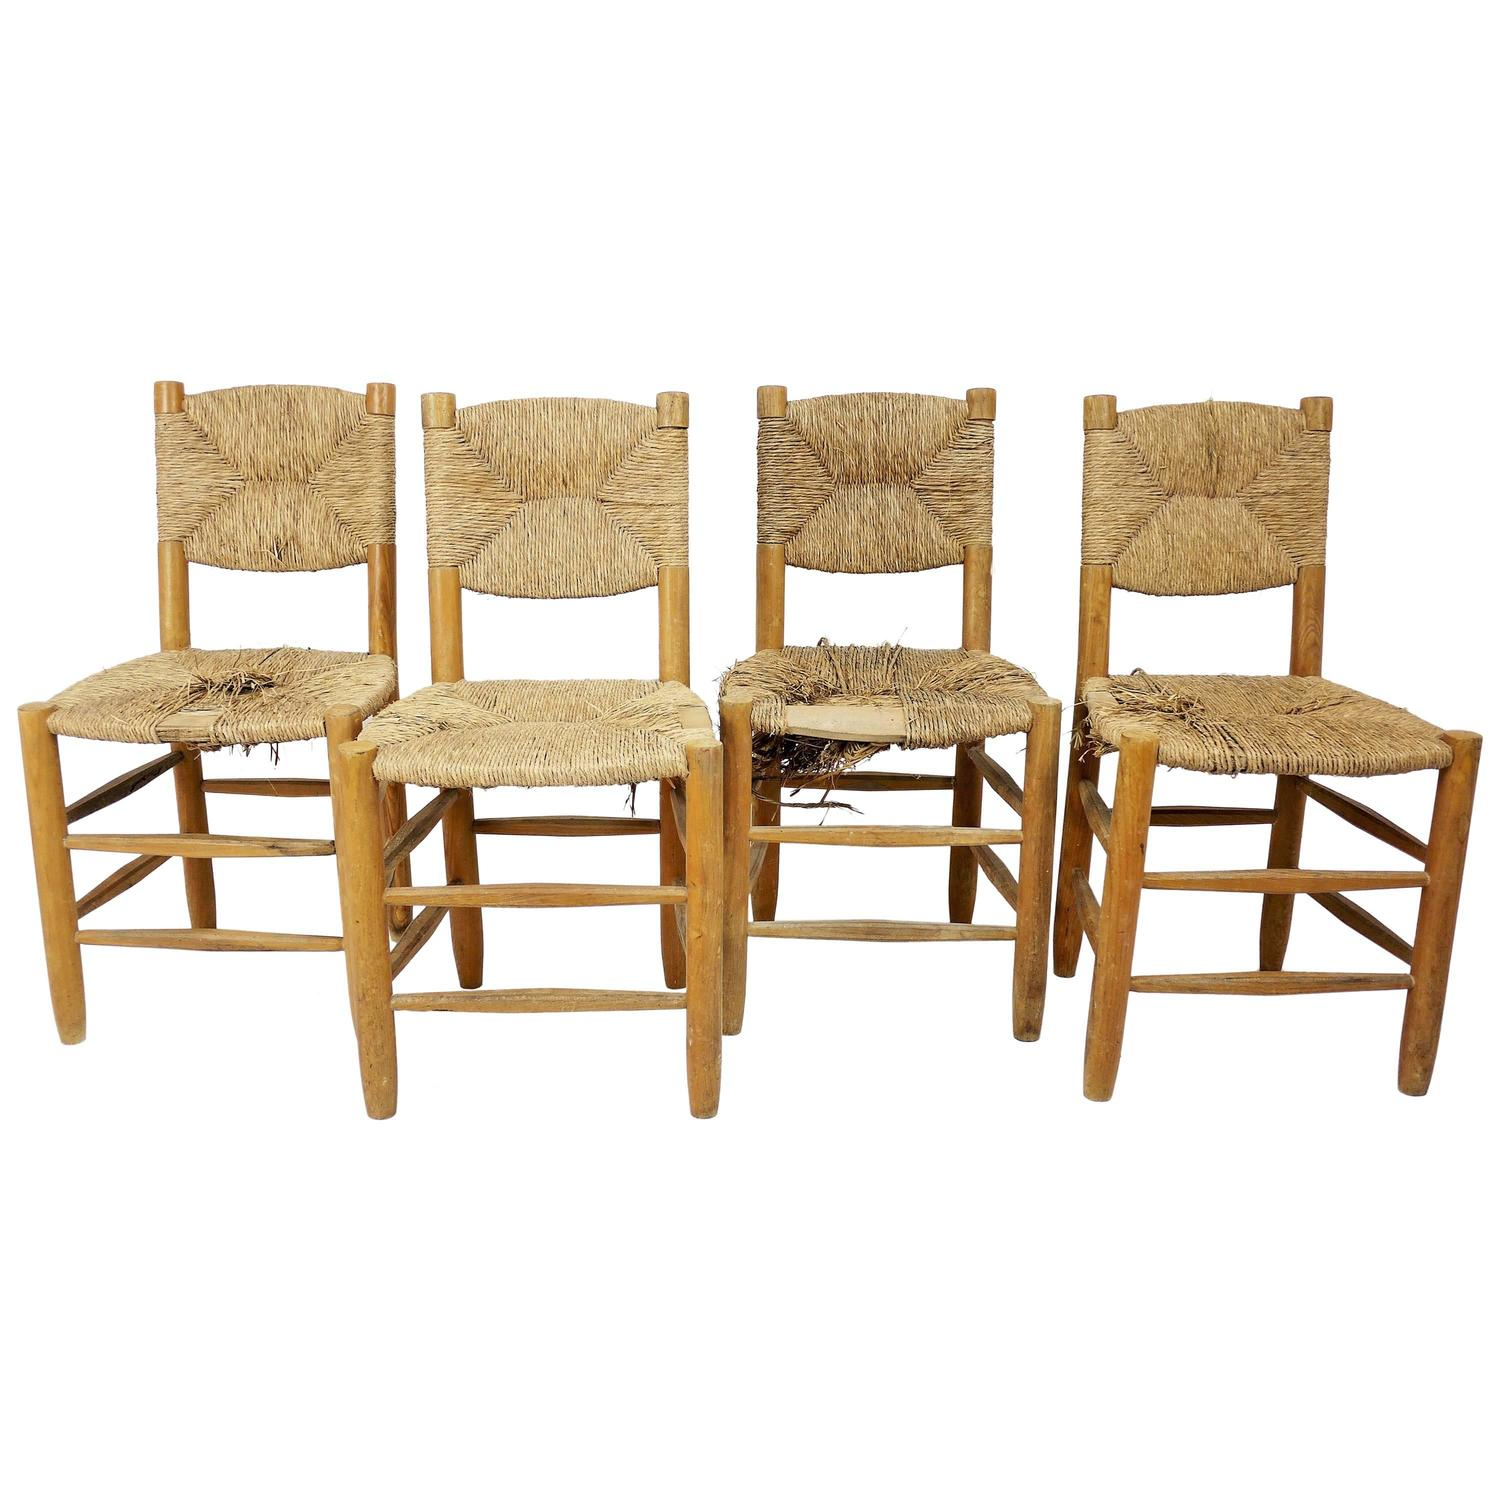 Set Of Four Rush Chairs By Charlotte Perriand For Sale At 1stdibs